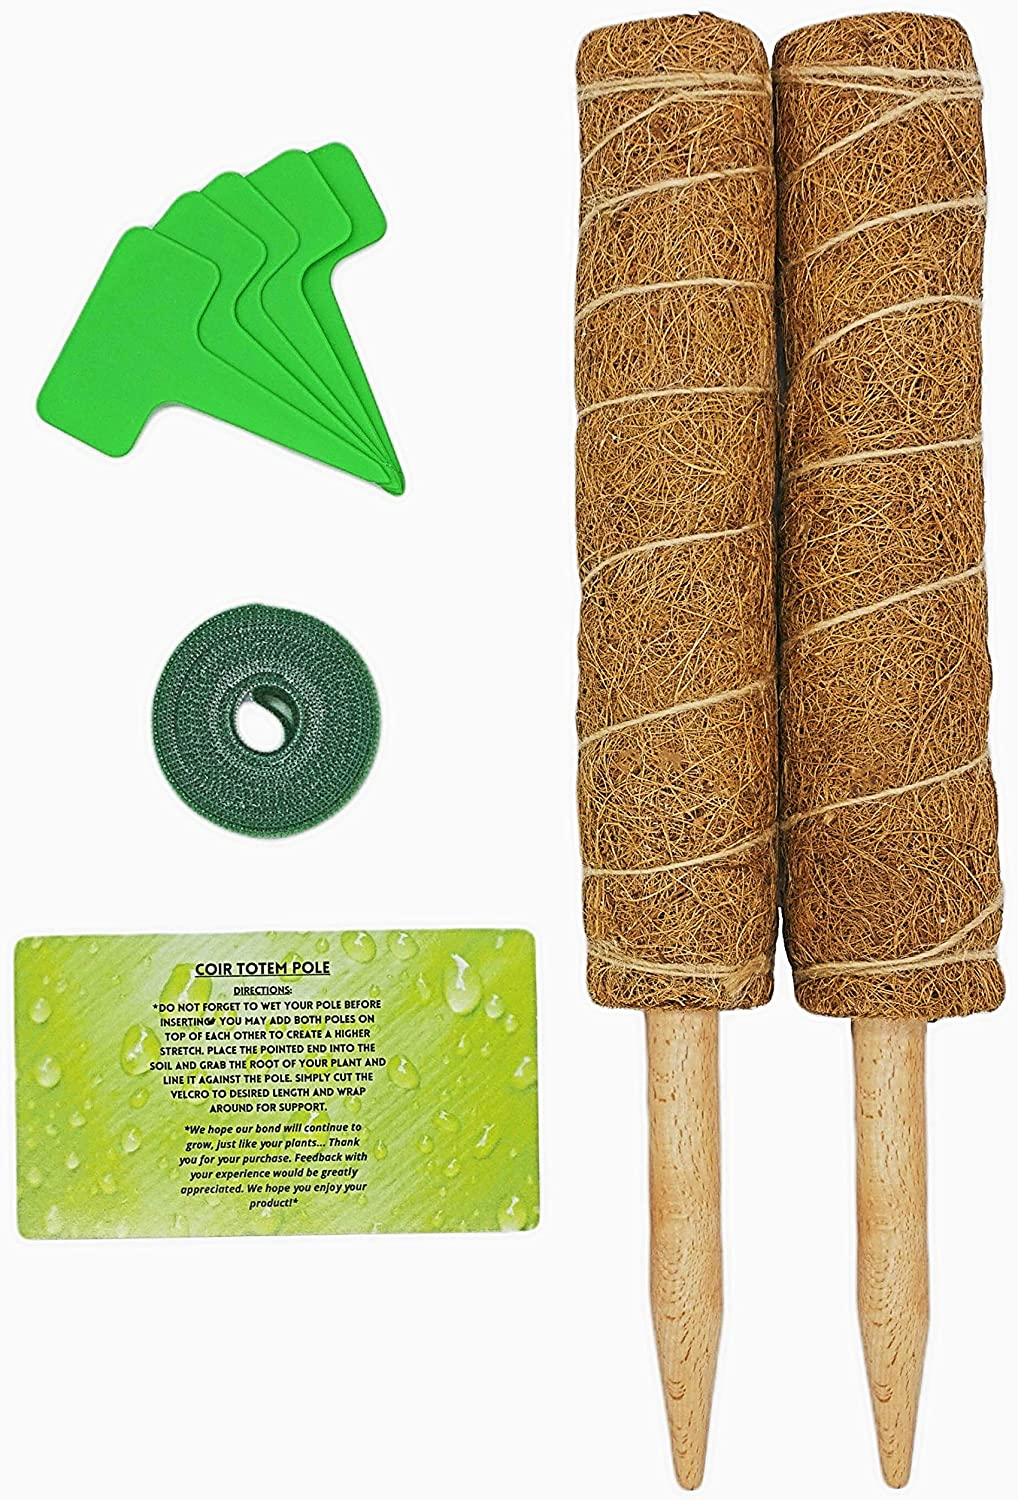 Coir Totem Pole - 15 Inch Plant Stakes and Supports for Climbing, Potted and Indoor Plants - 2 Pcs Eco-Friendly Moss Poles for Plant Growth - Hook and Loop Attachment - Garden Labels Included